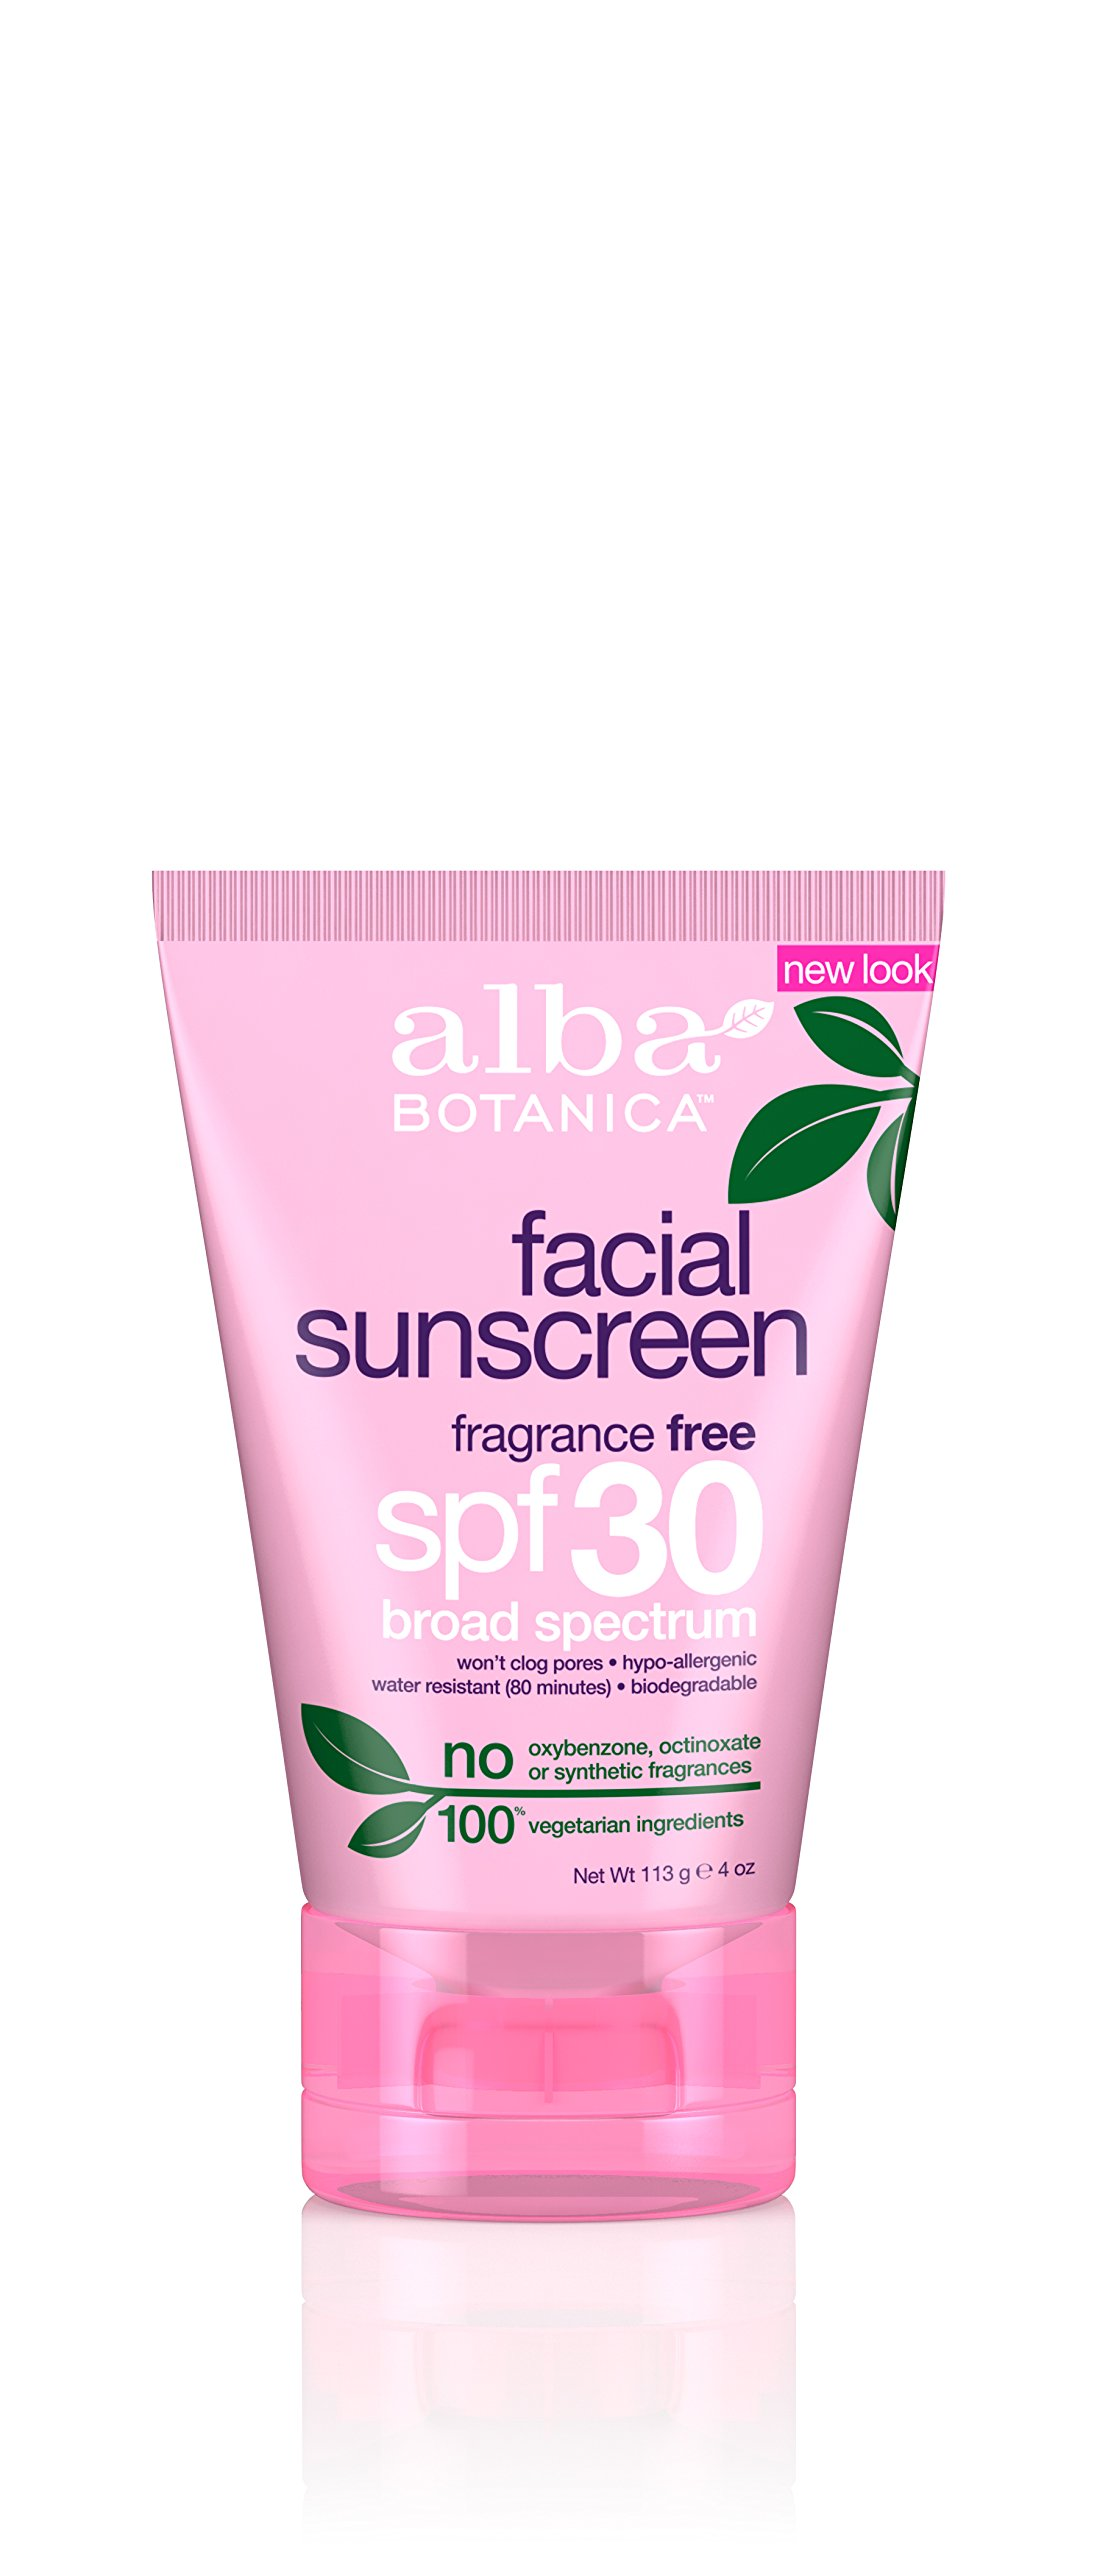 Alba Botanica Very Emollient, Facial Sunscreen SPF 30, 4 Ounce